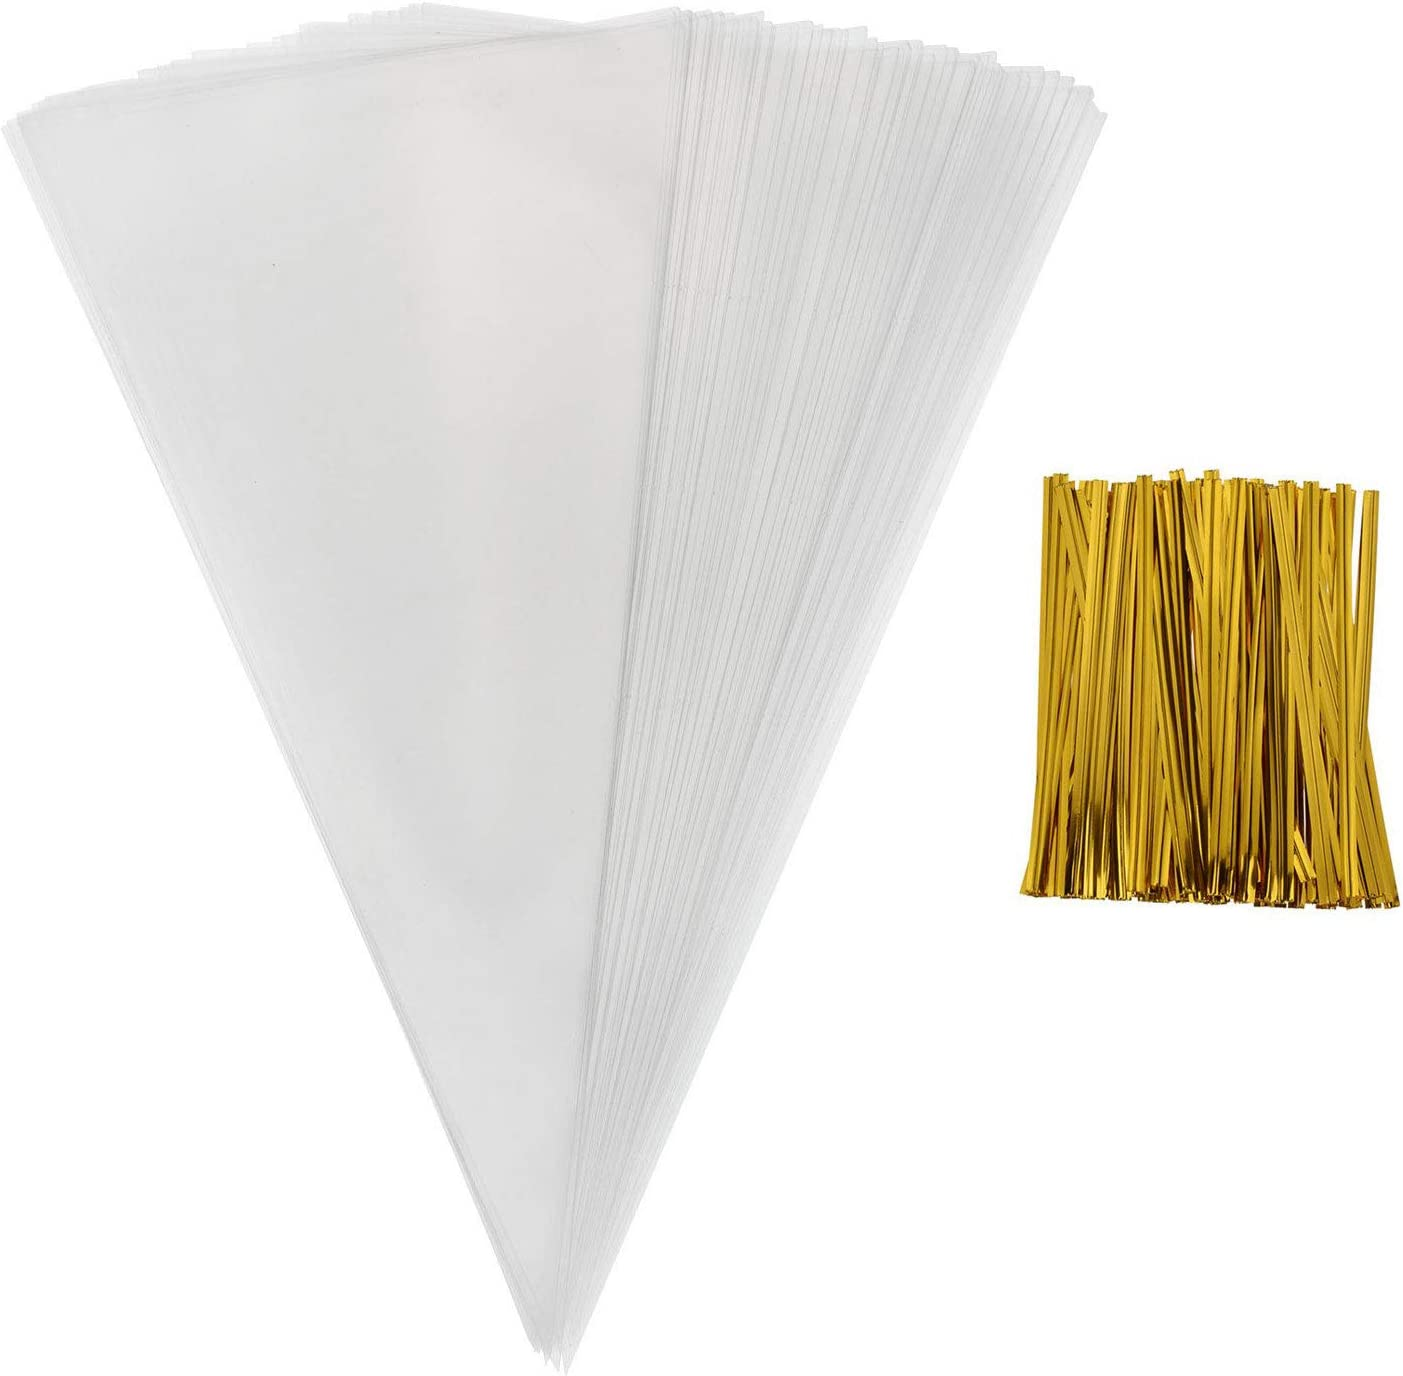 Cellophane Bag, Sweets Clear Cone Bags and Ties for Party Christmas and Festivals, 50pcs 26x18cm(L,W)